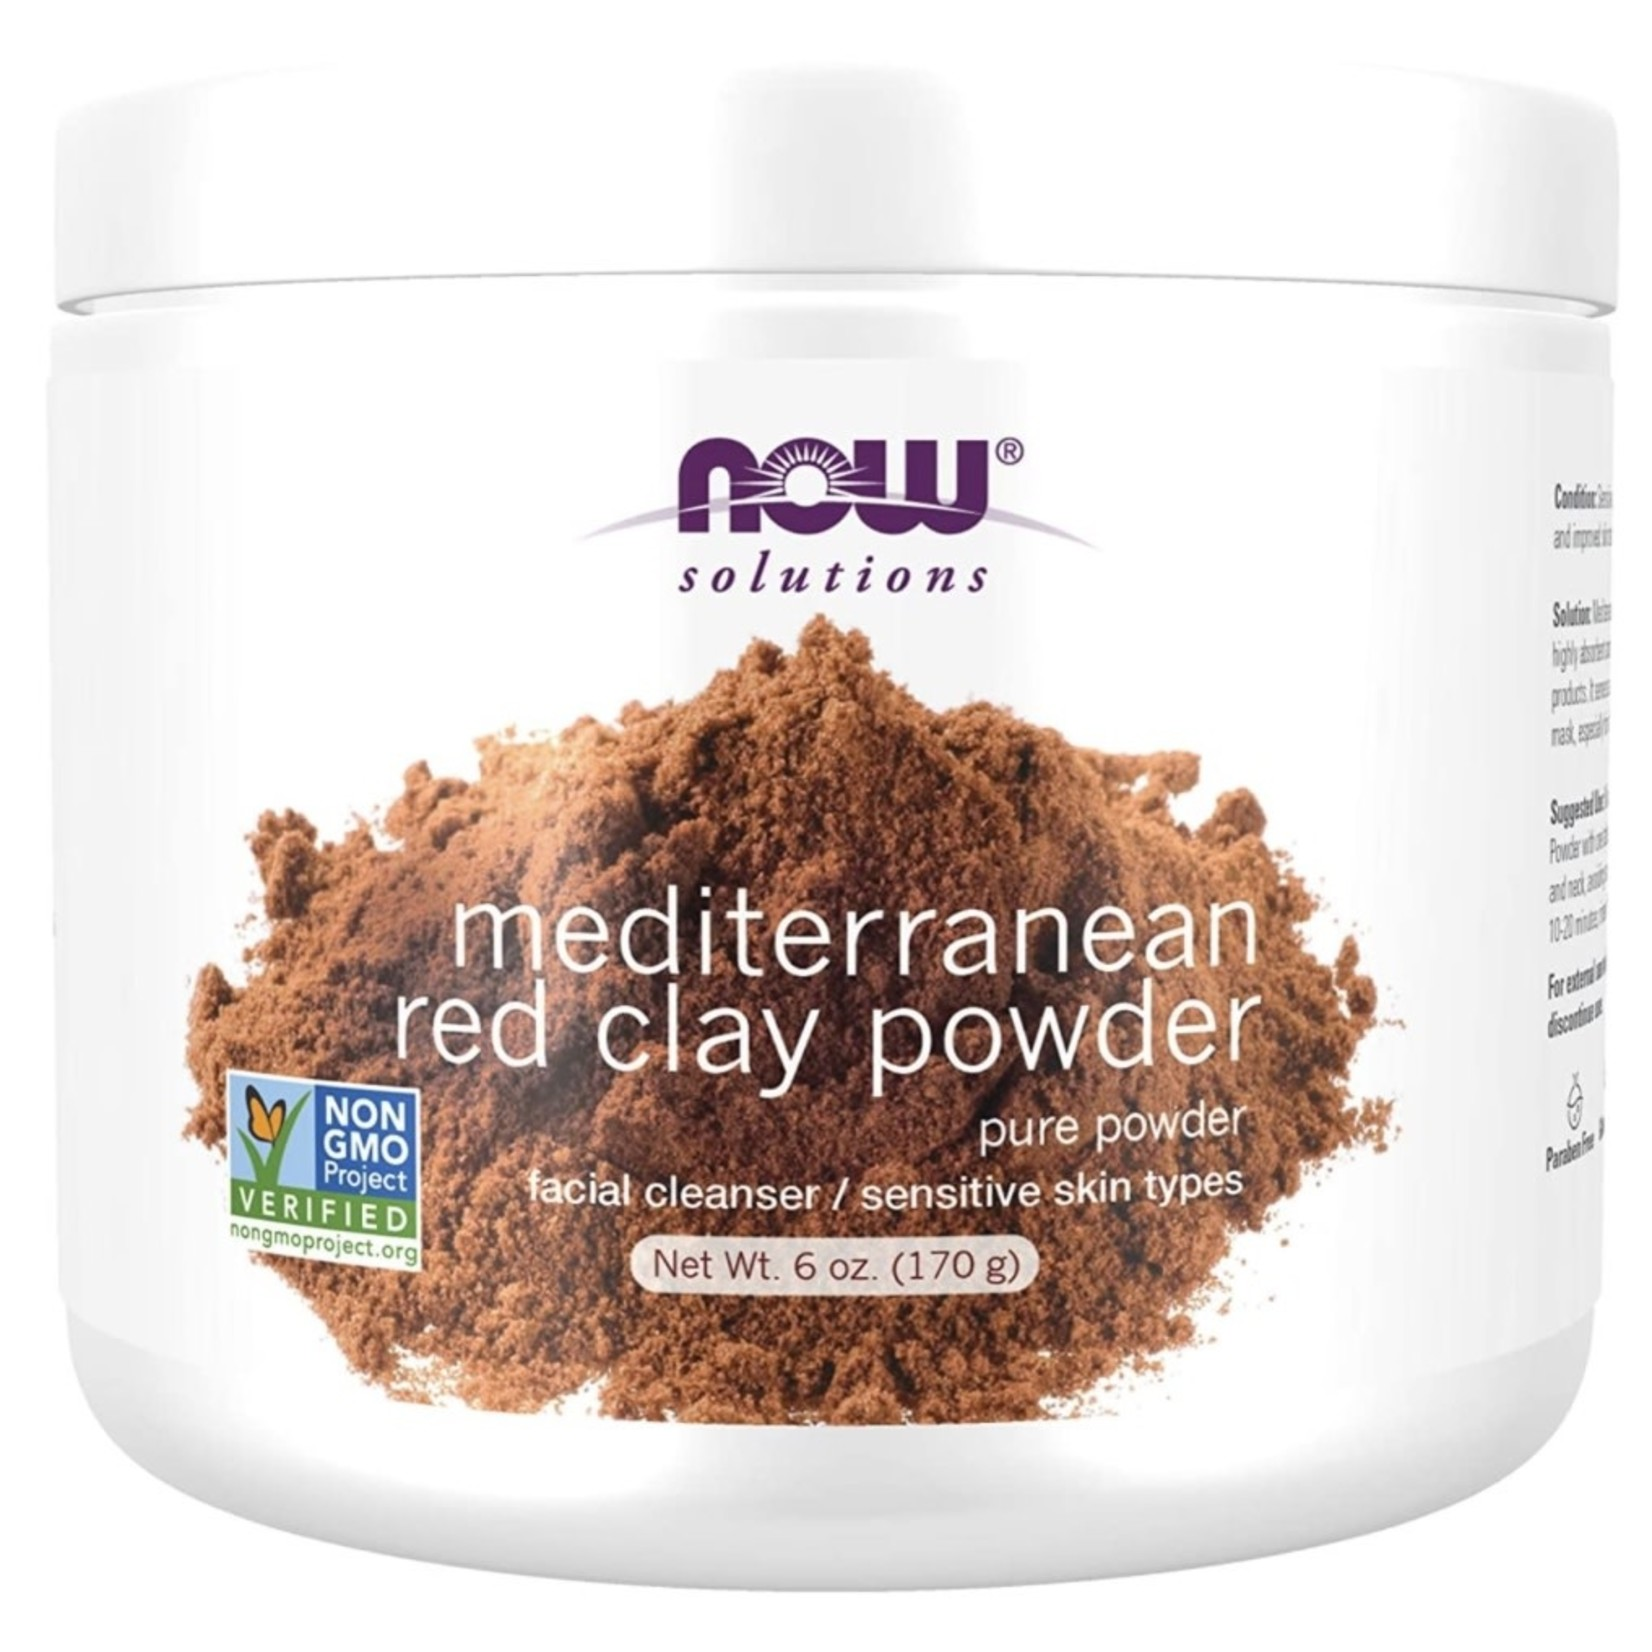 Now Now Moroccan Red Clay Powder 170g